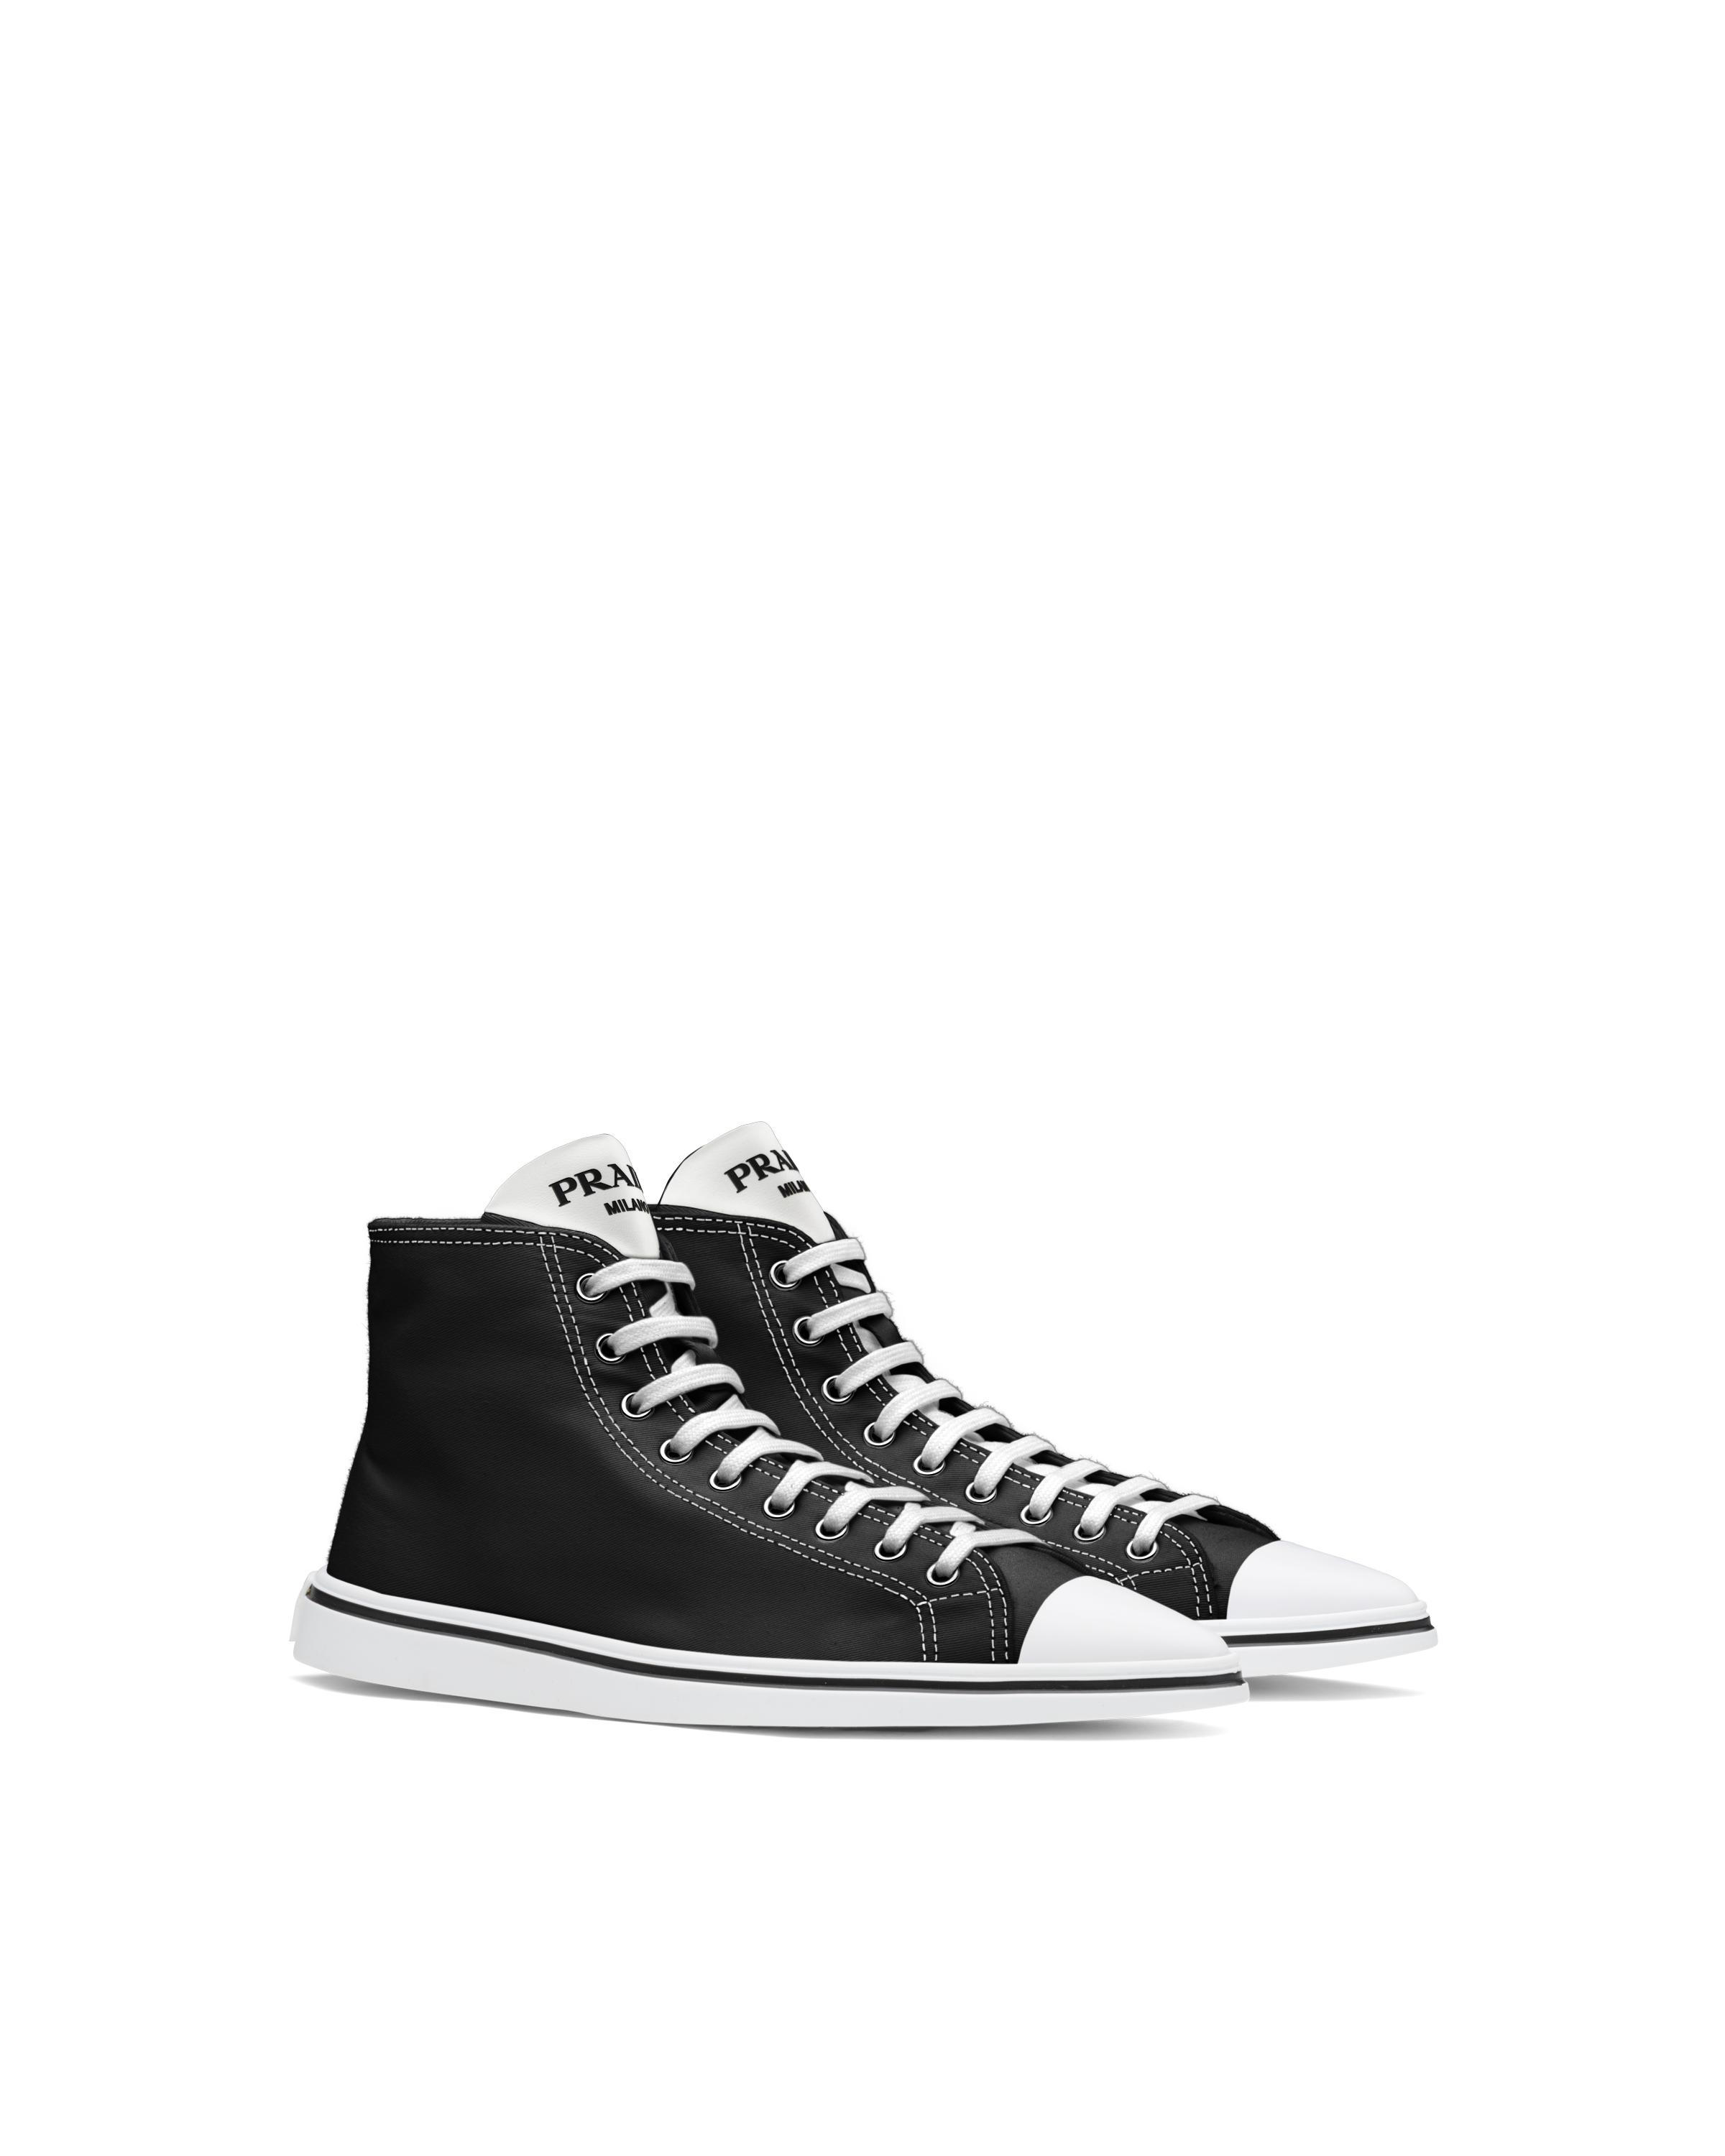 Synthesis High-top Sneakers Women Black 5